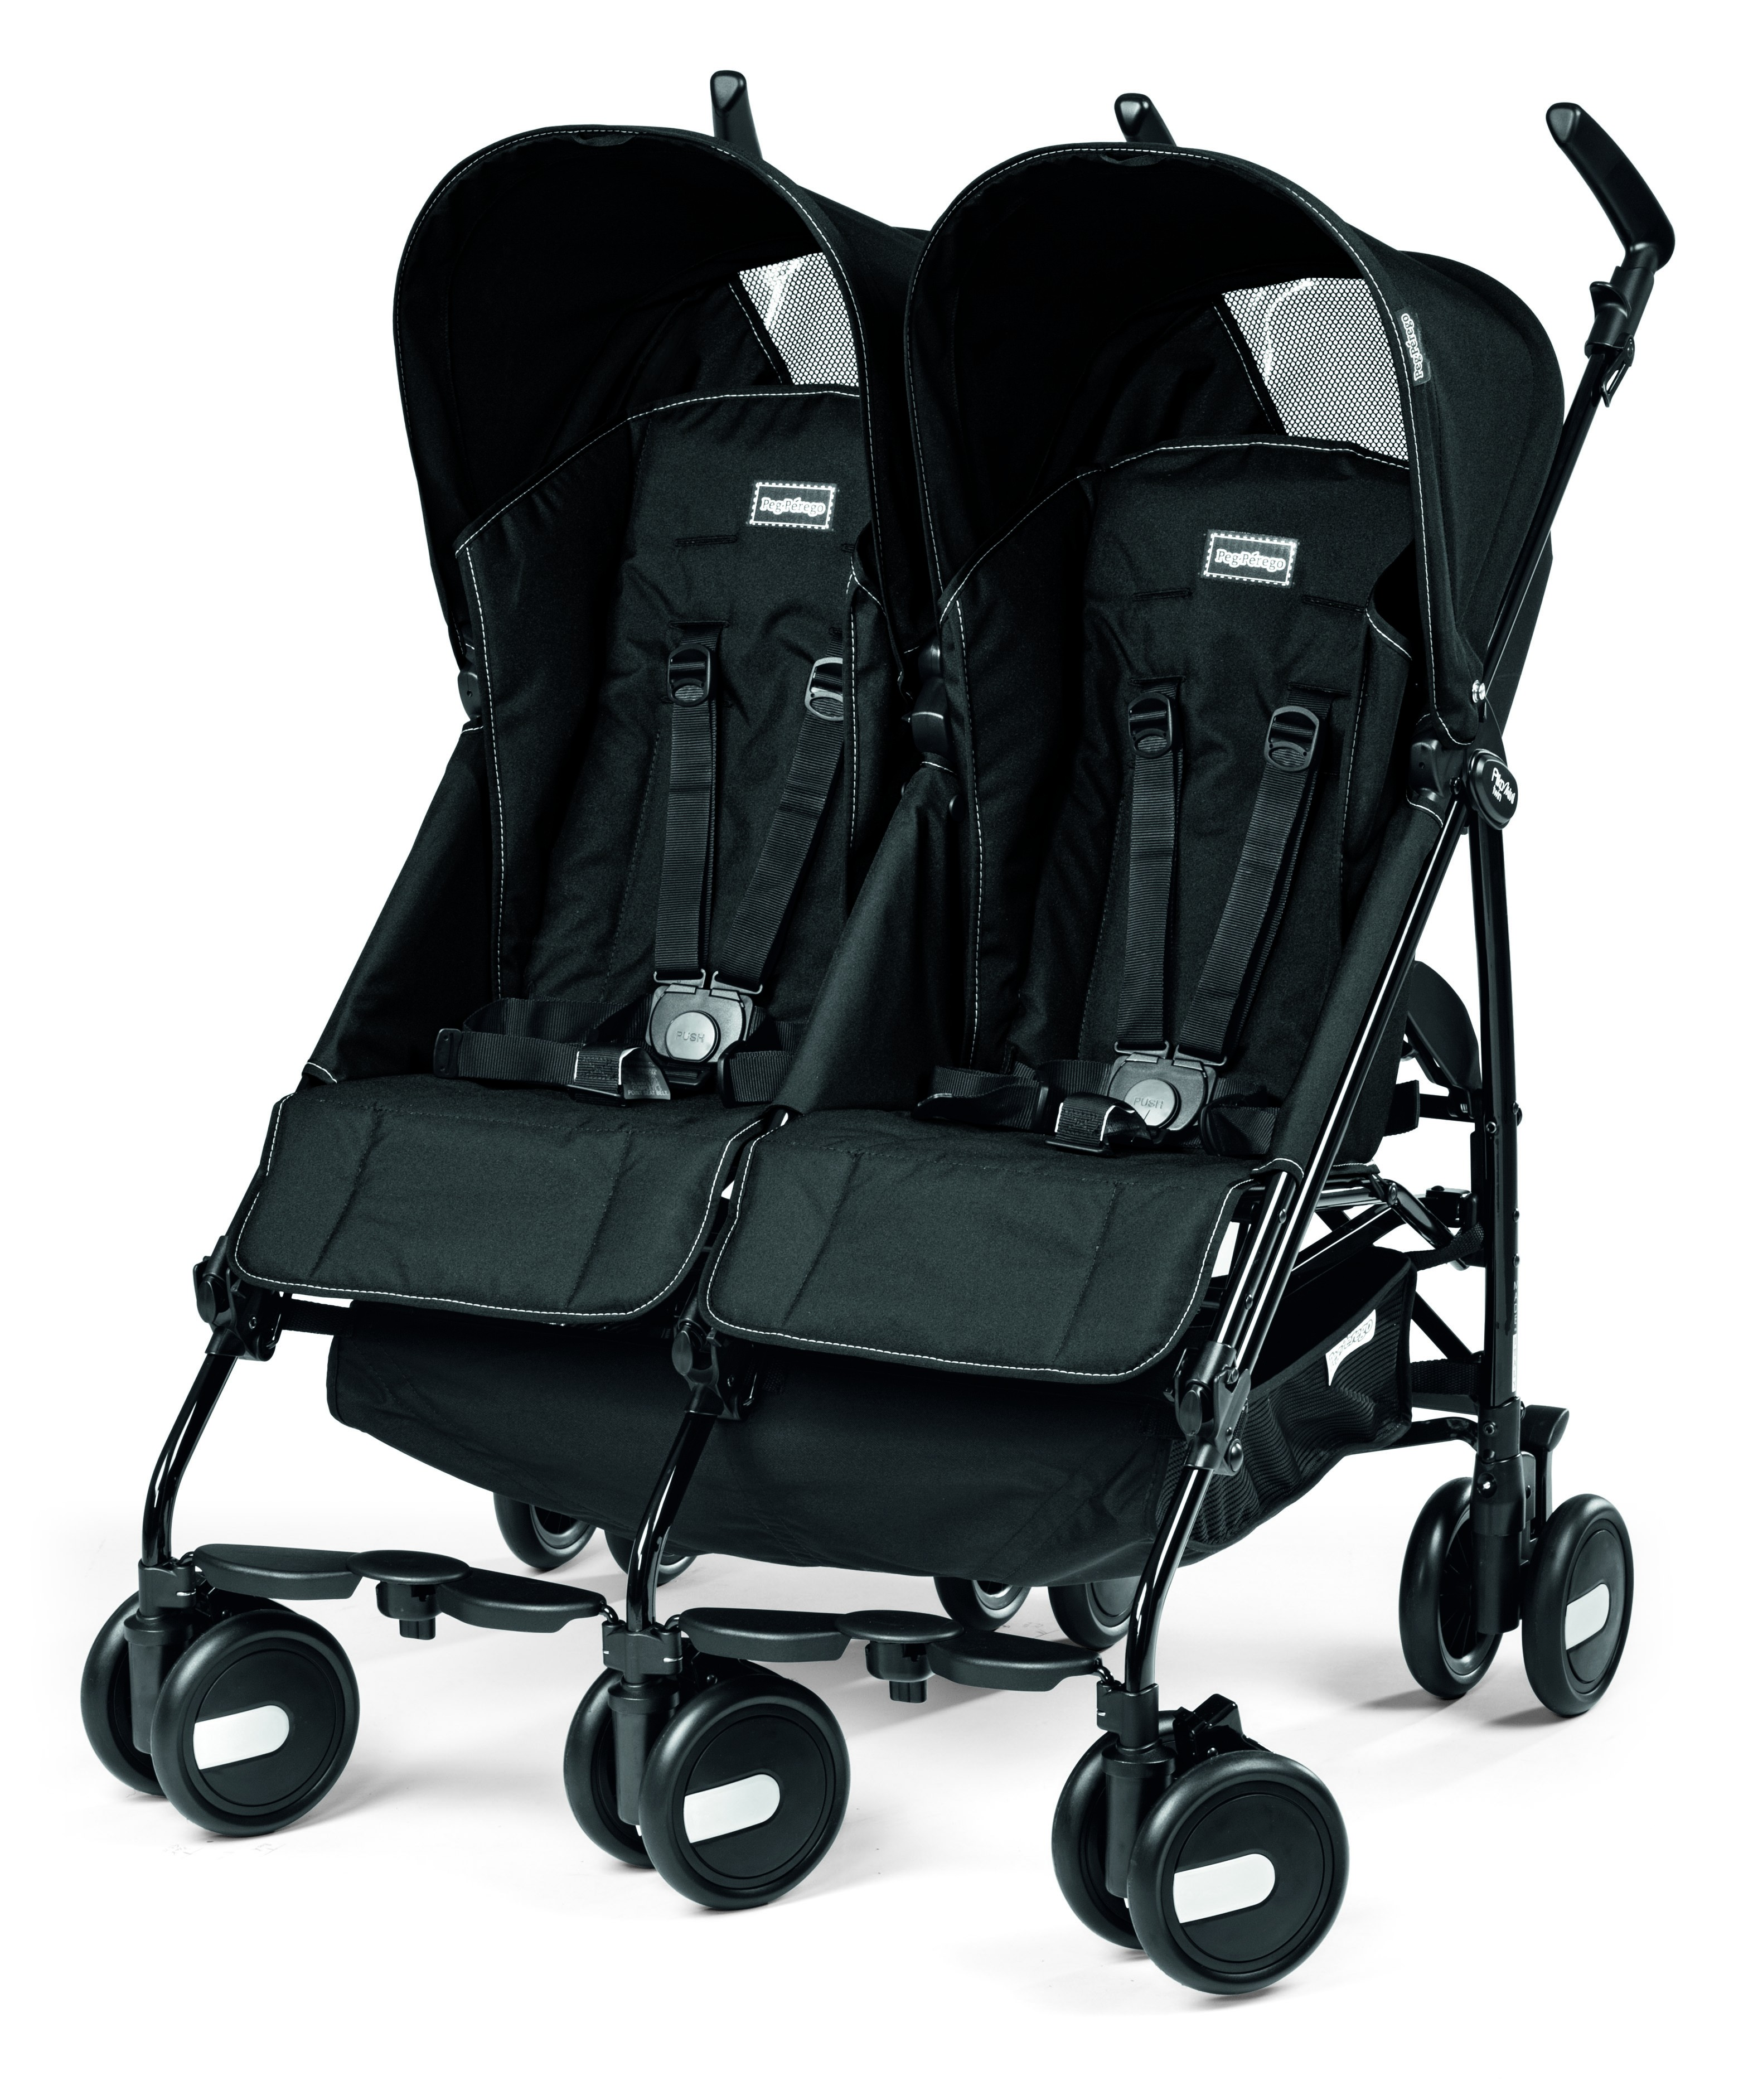 Peg Perego Stroller For Twins Peg Perego Pliko Mini Twin Leightweight Double Stroller